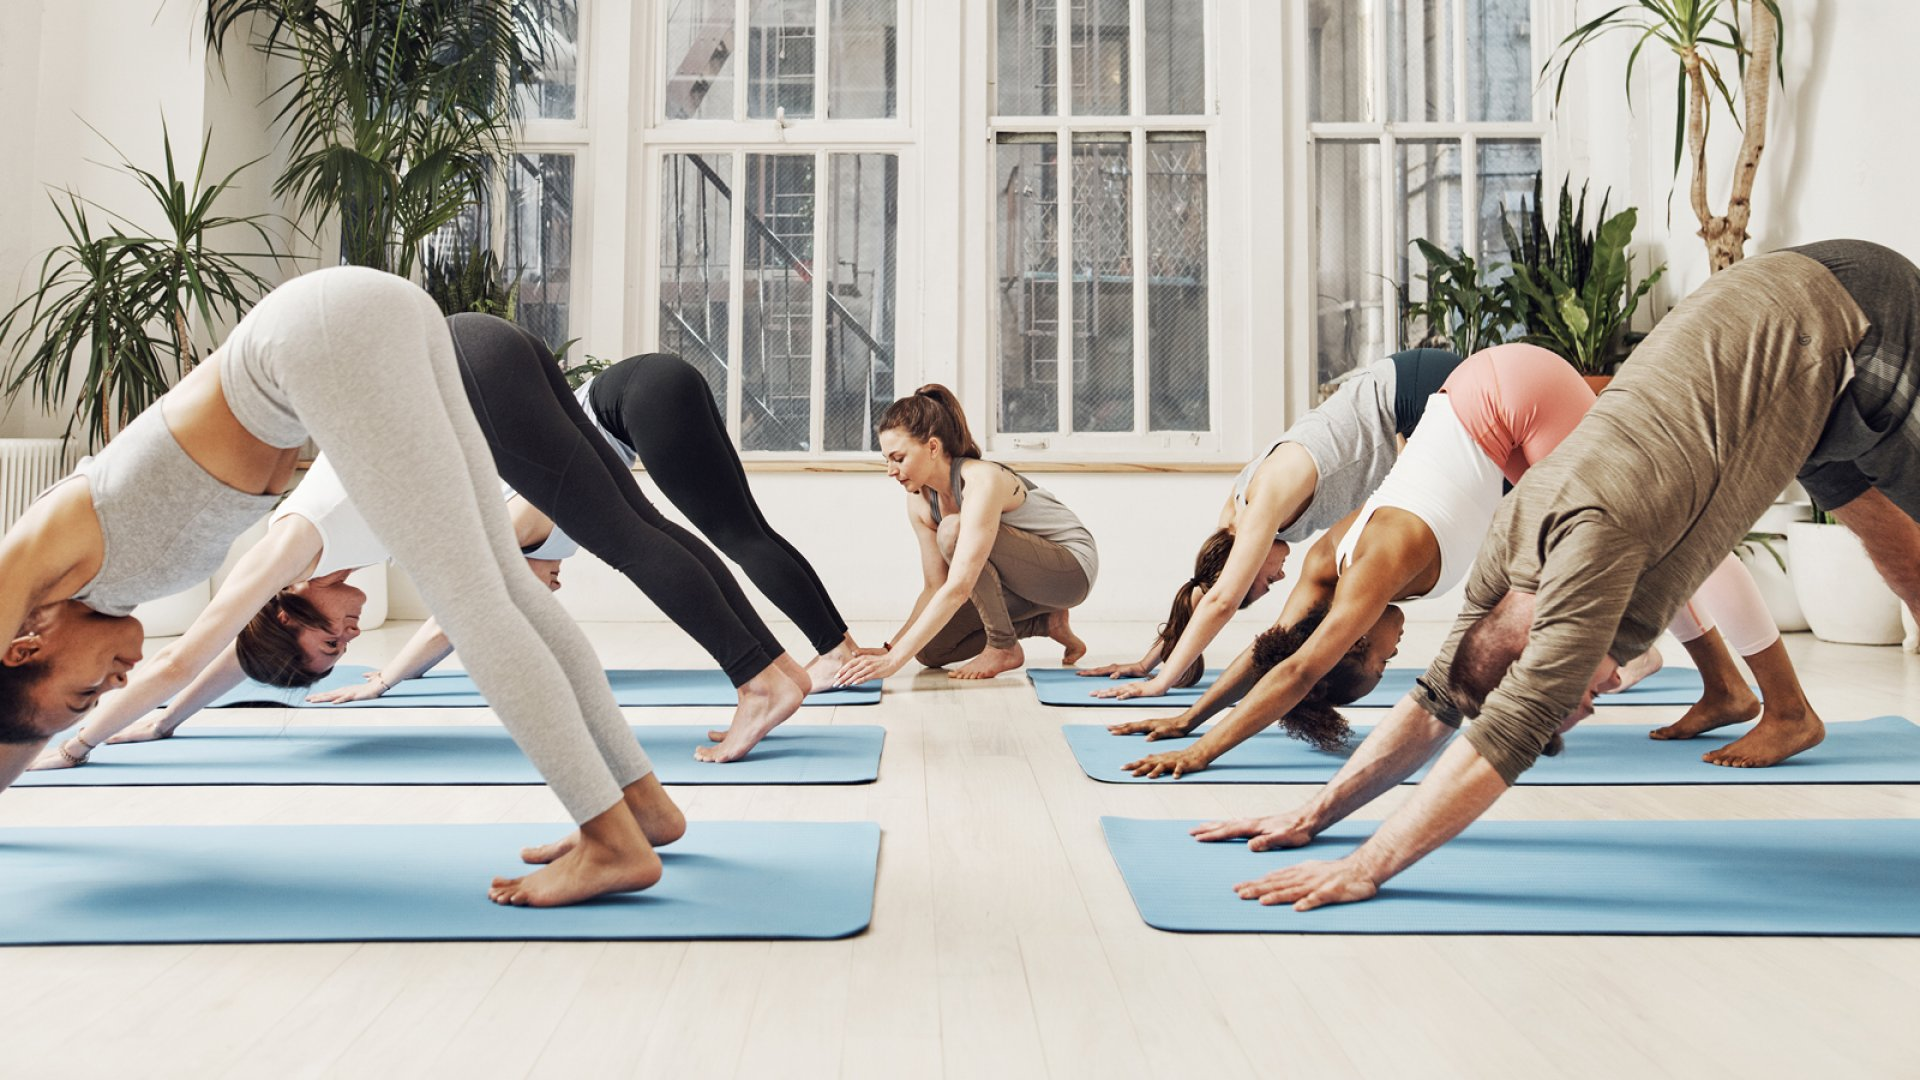 ClassPass May Be the First Unicorn of This Decade, But It Still Has a Significant Problem to Overcome. And So Do Boutique Fitness Studio Partners